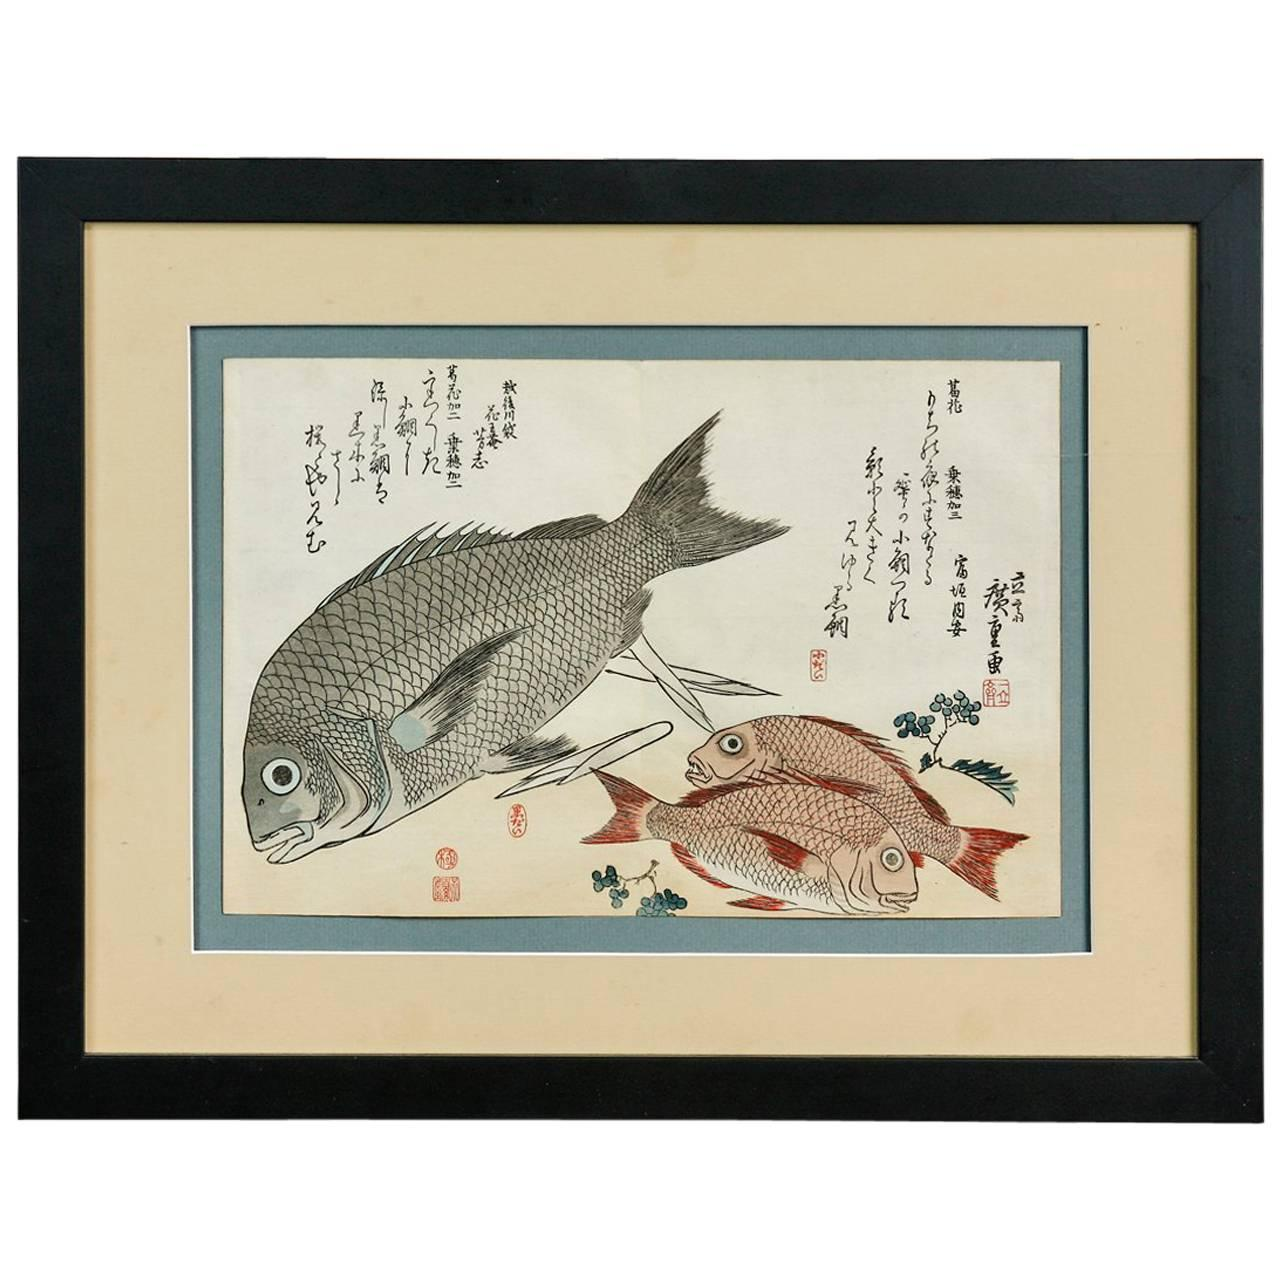 19th Century Japanese Woodblock Fish Print By Utagawa Hiroshige